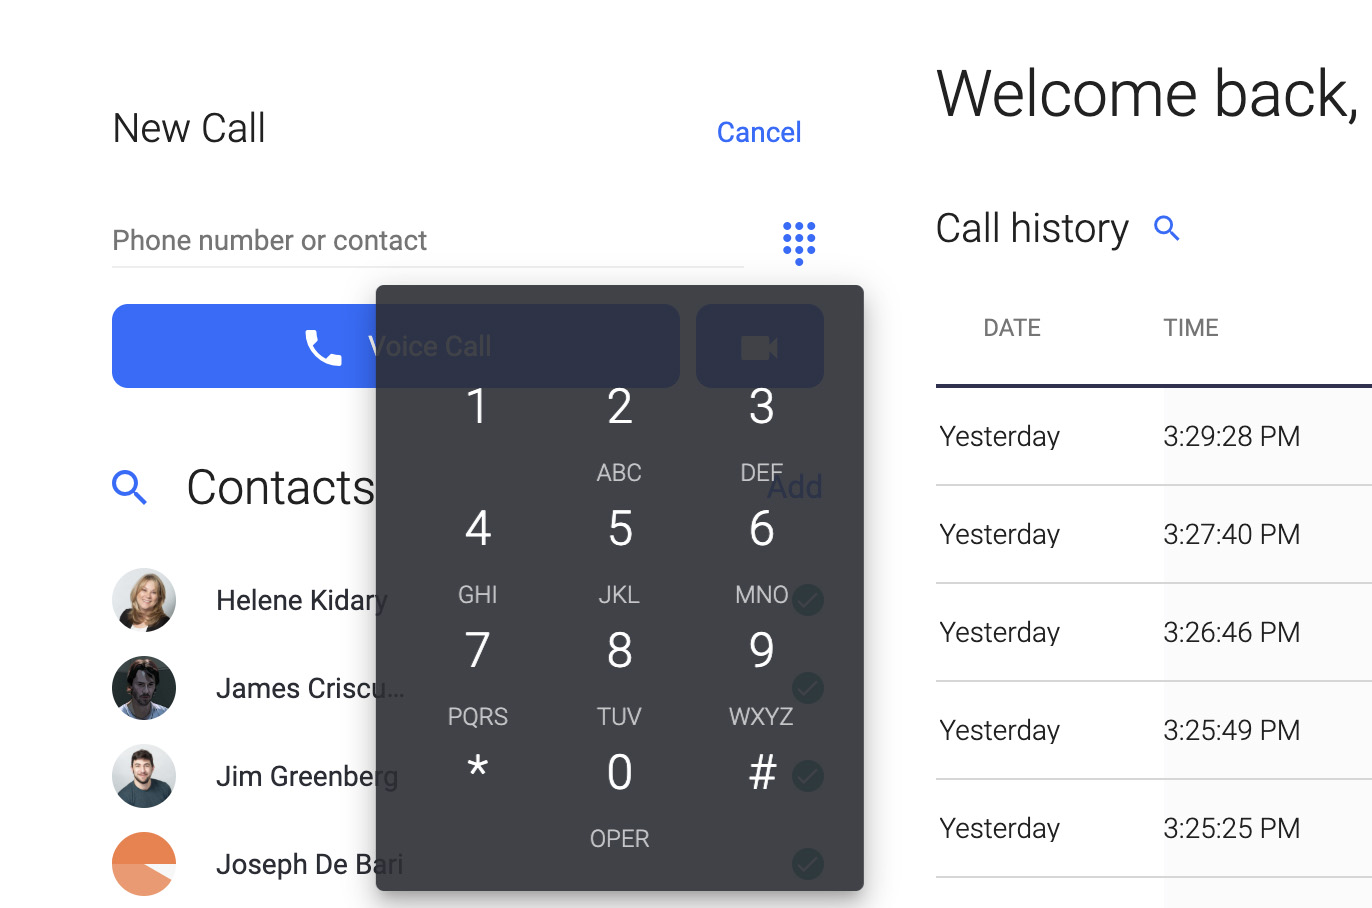 Use the OnSIP app, available in a web browser window or desktop application, to make and receive phone calls on your computer or laptop.